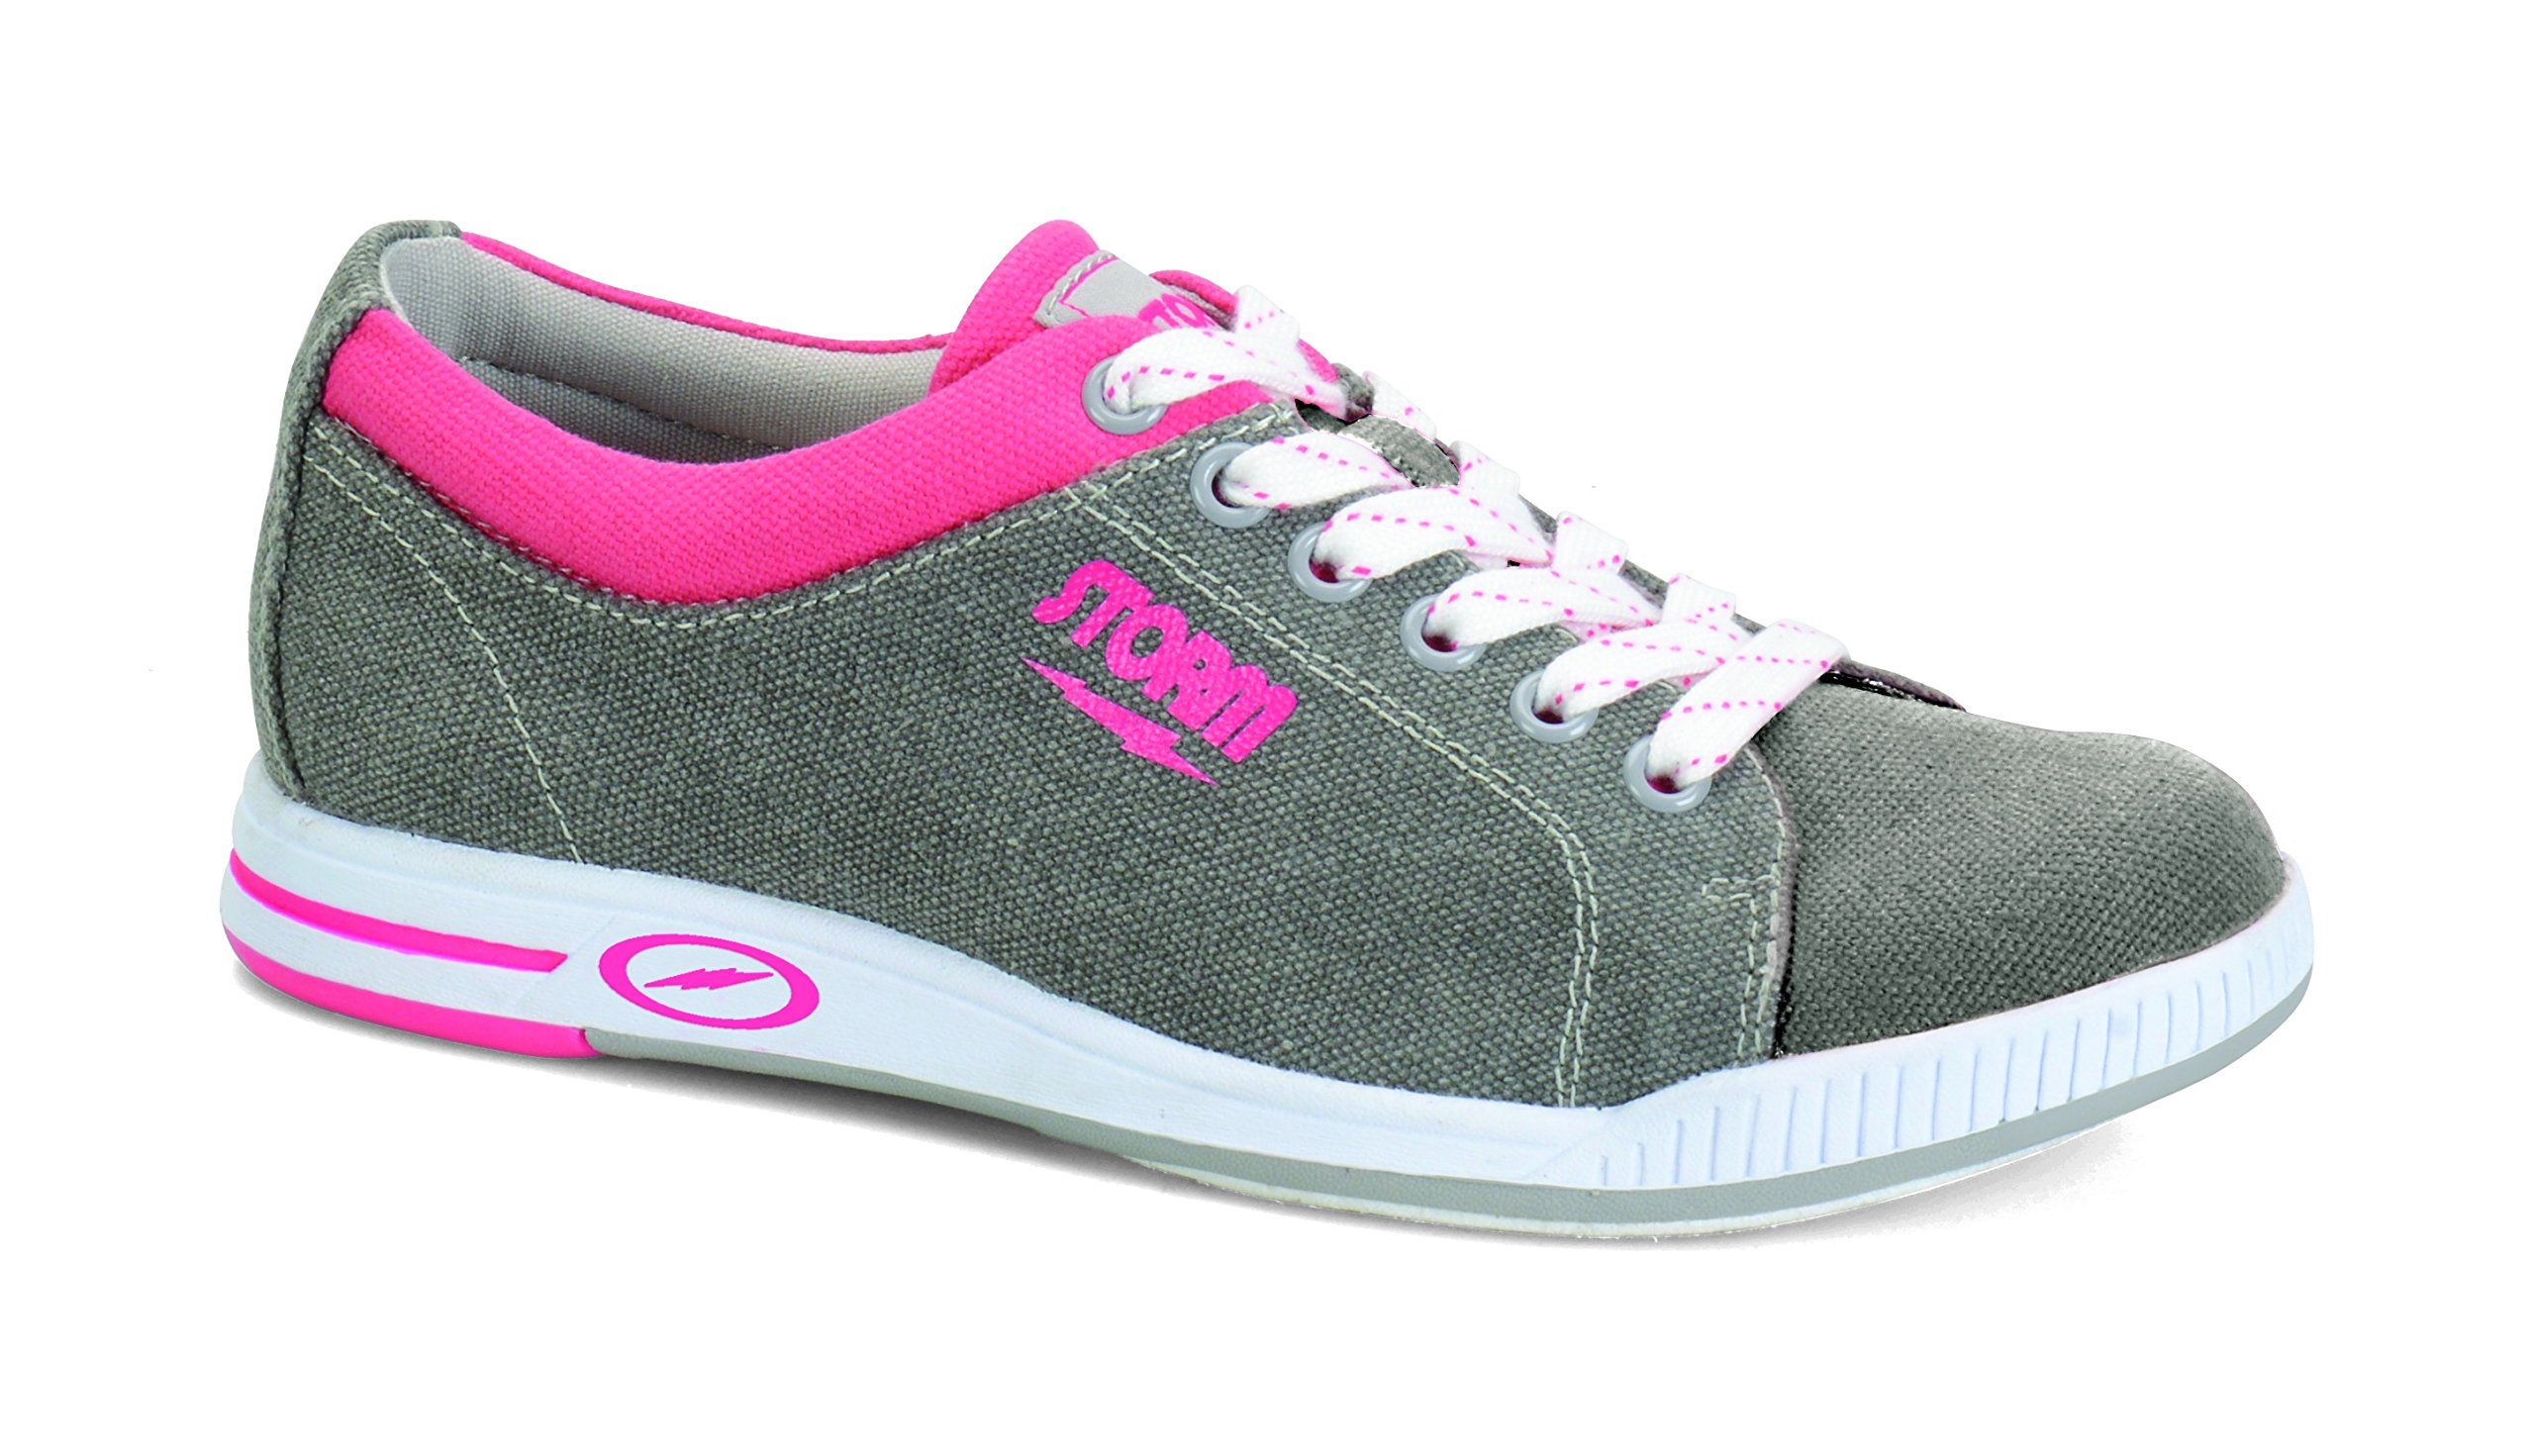 Storm Meadow Bowling Shoes, Grey/Pink, 6.5 by Storm